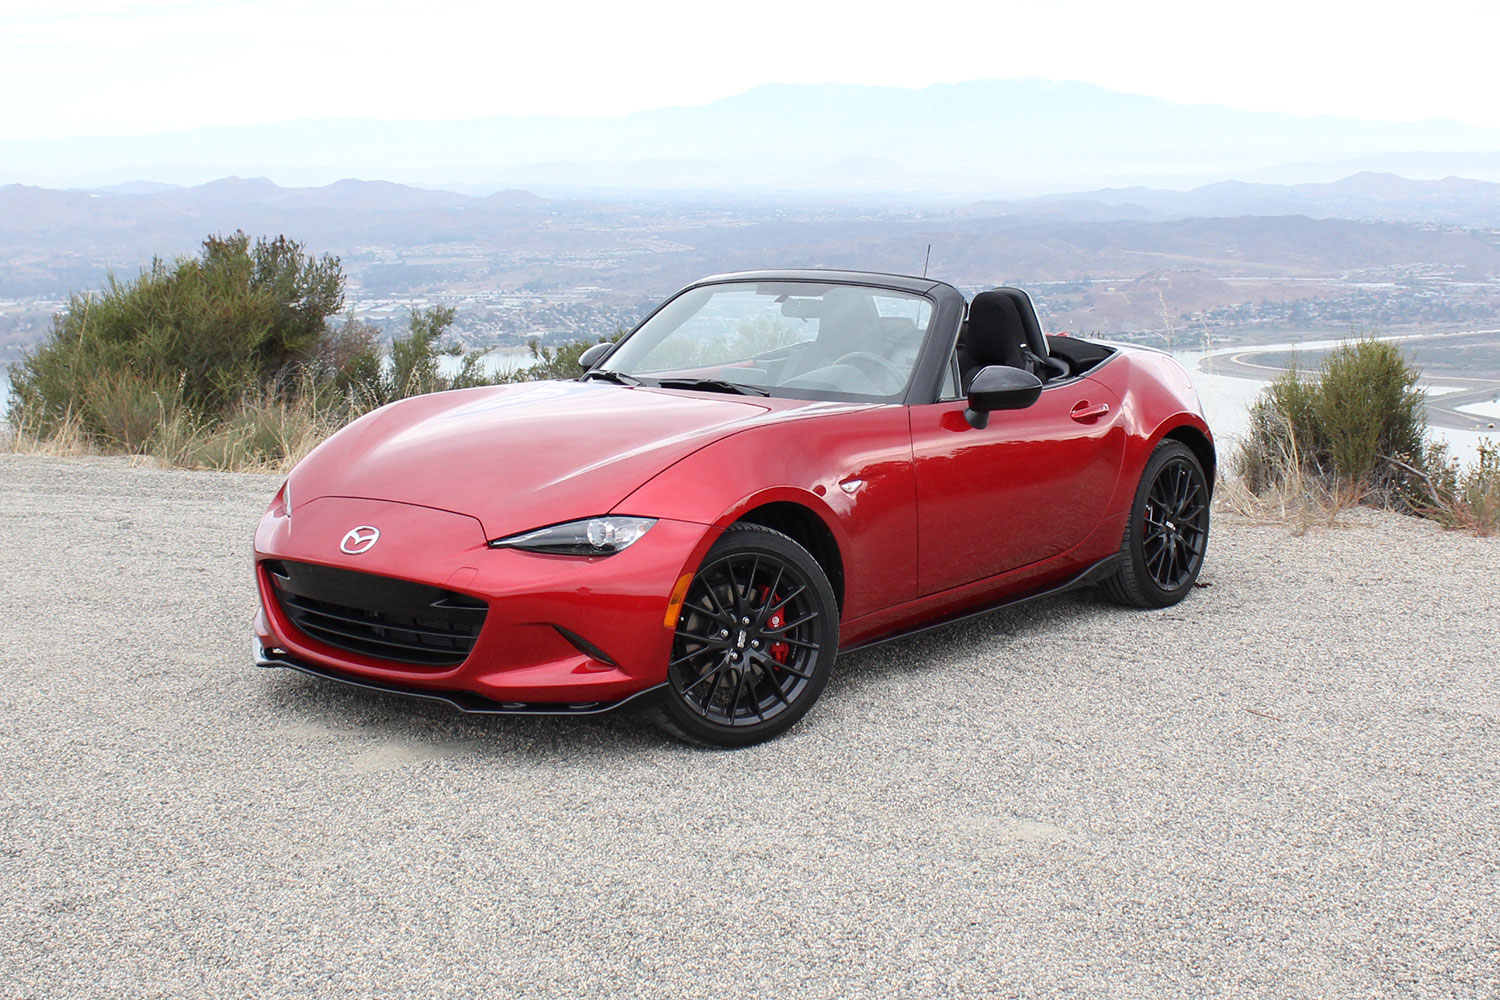 2016 Mazda Mx 5 Miata Review Digital Trends